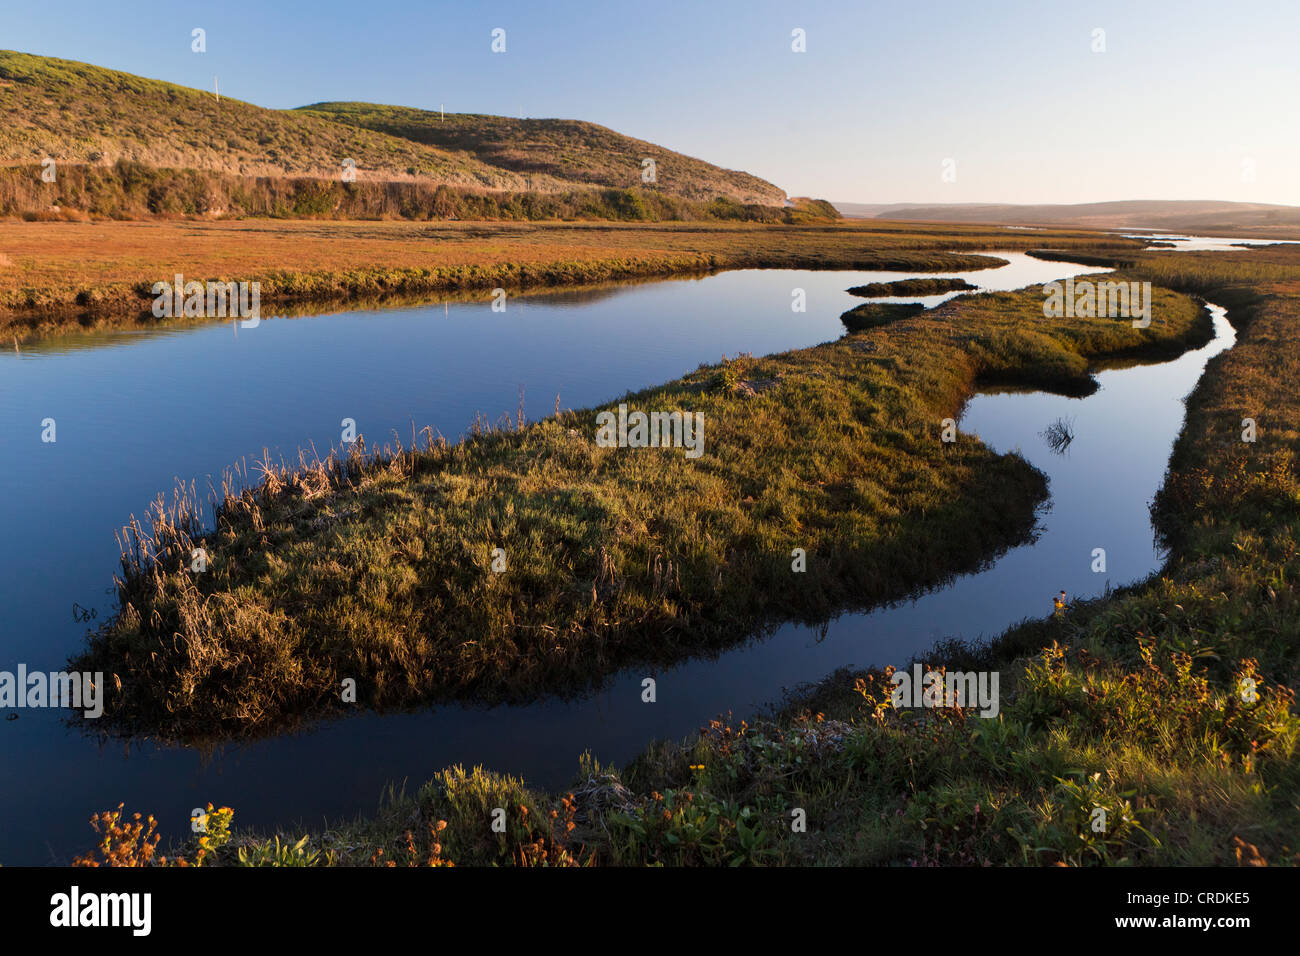 Schooner Bay, part of Drakes Estero, an estuary which drains the largest part of the Point Reyes Peninsula, Point - Stock Image